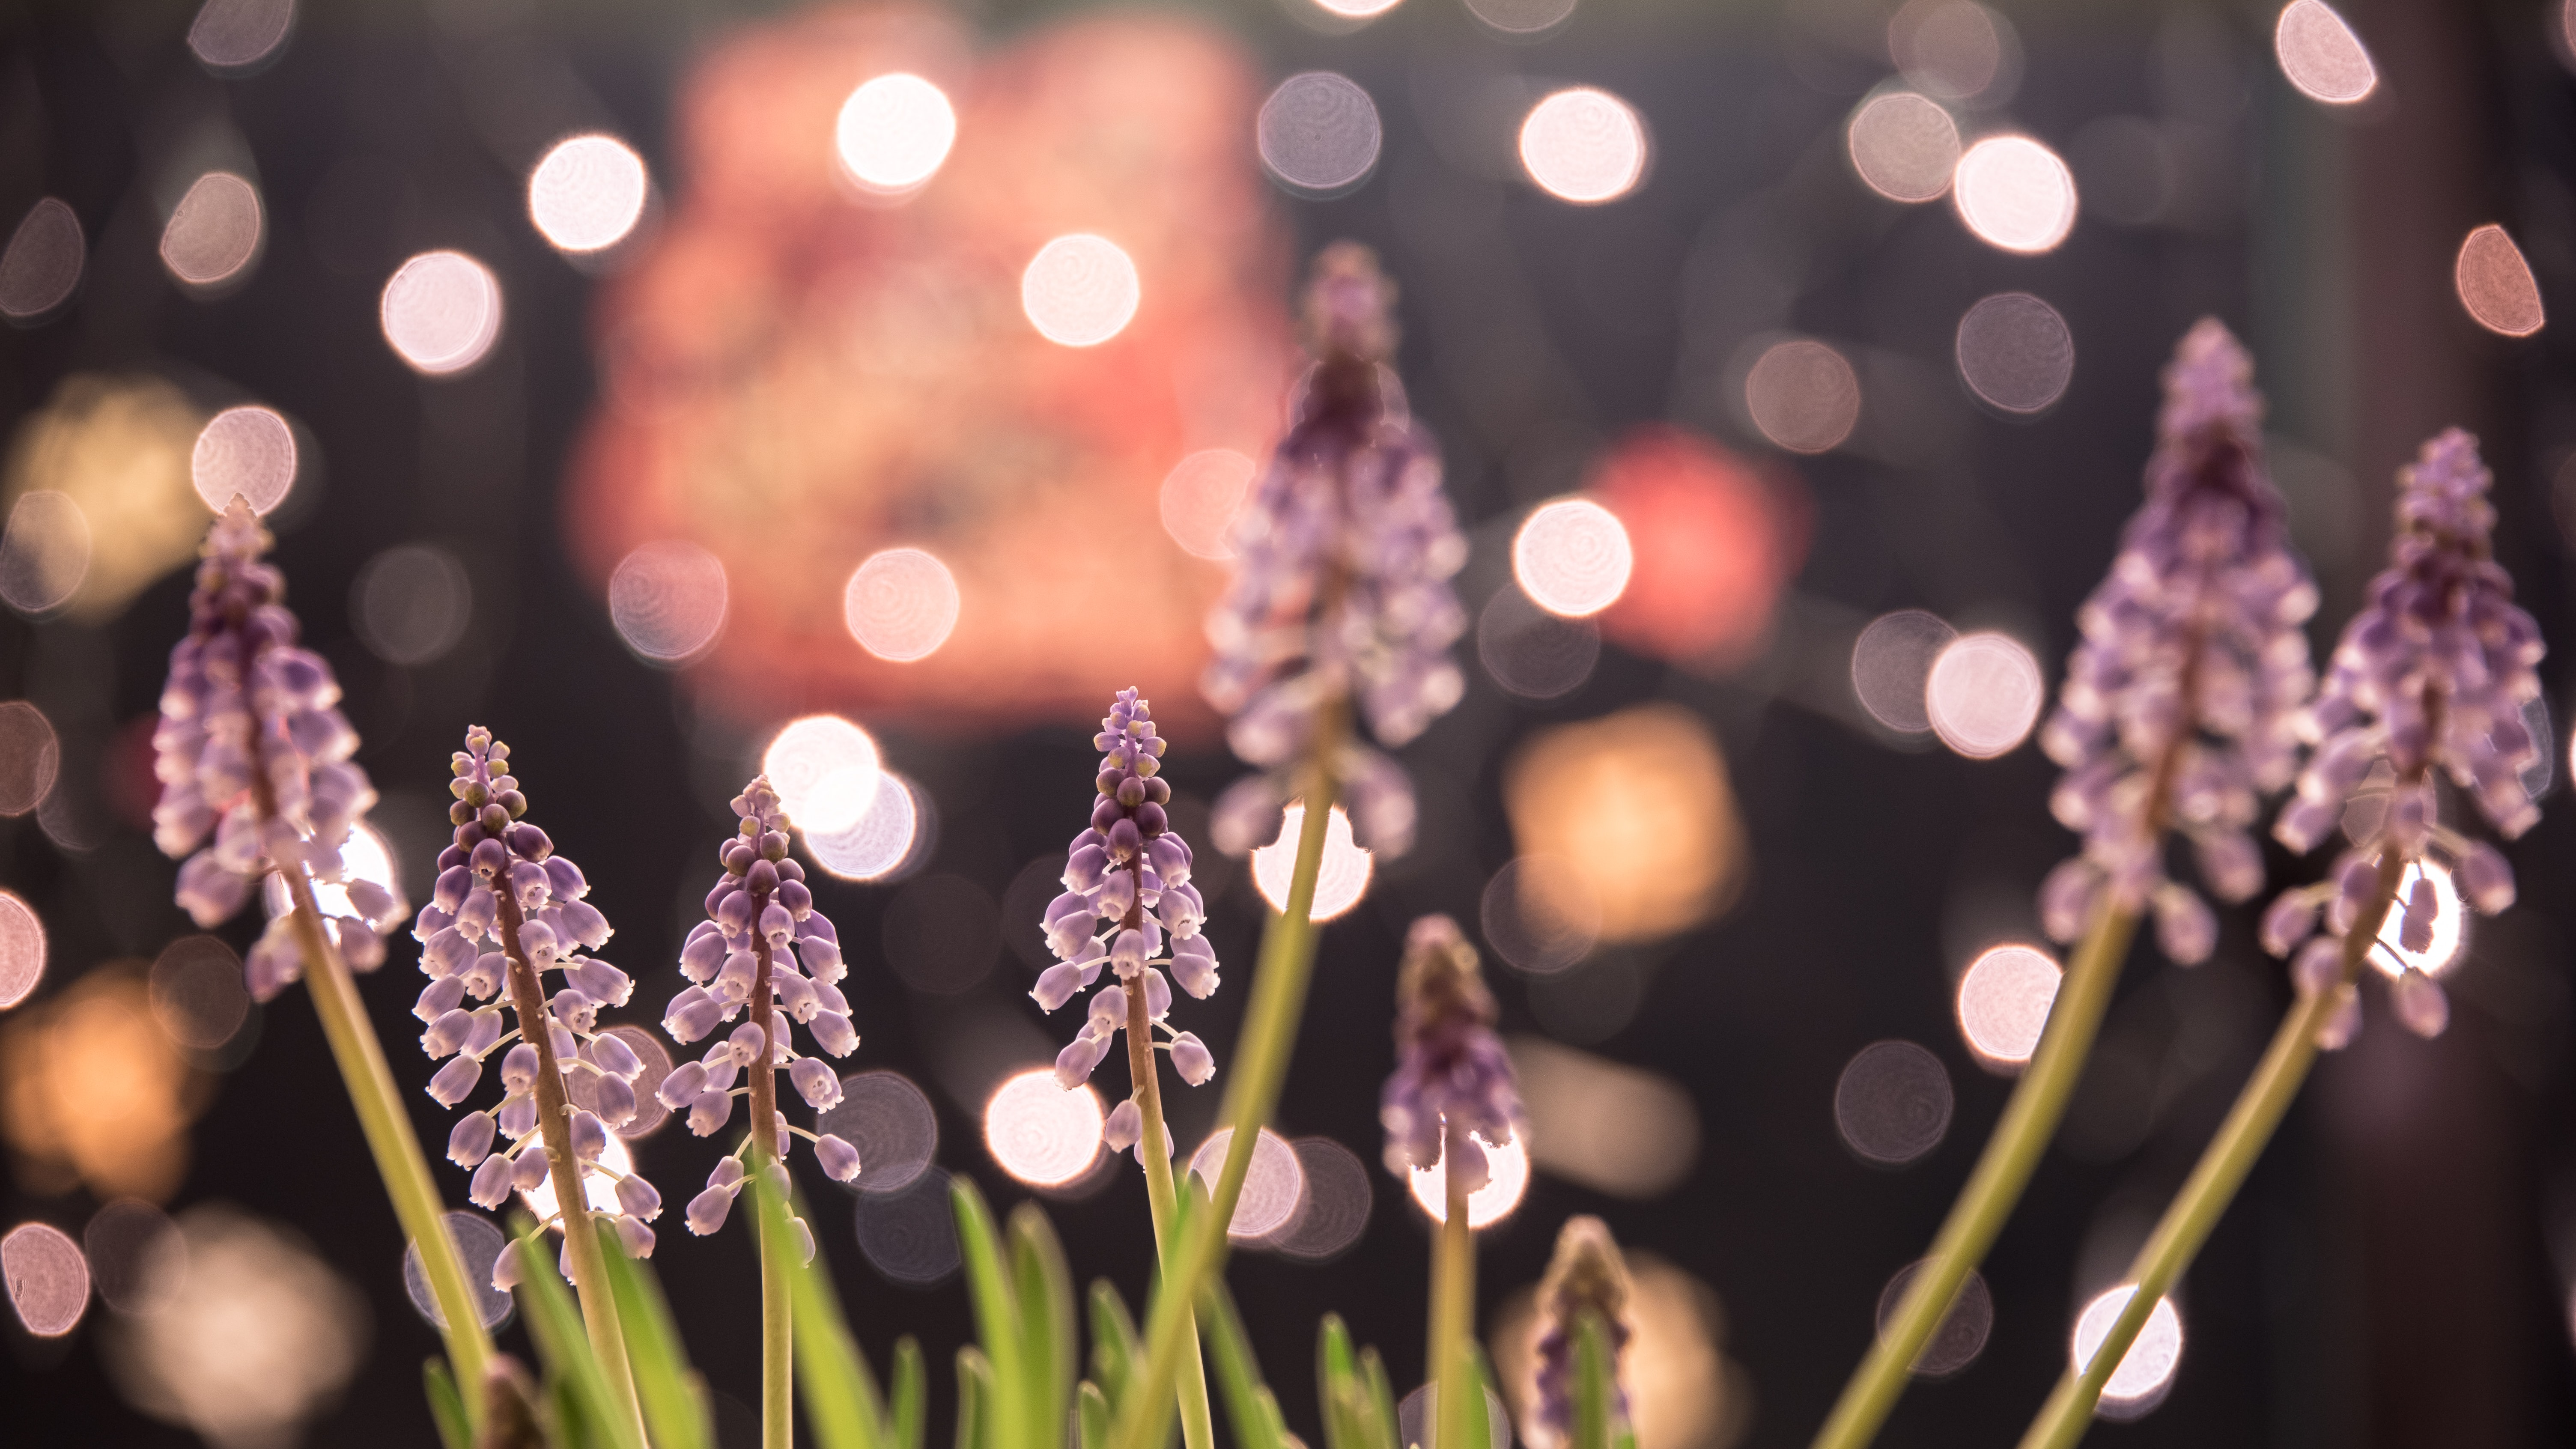 Close-up of a grouping of hyacinths with bokeh effect in the background